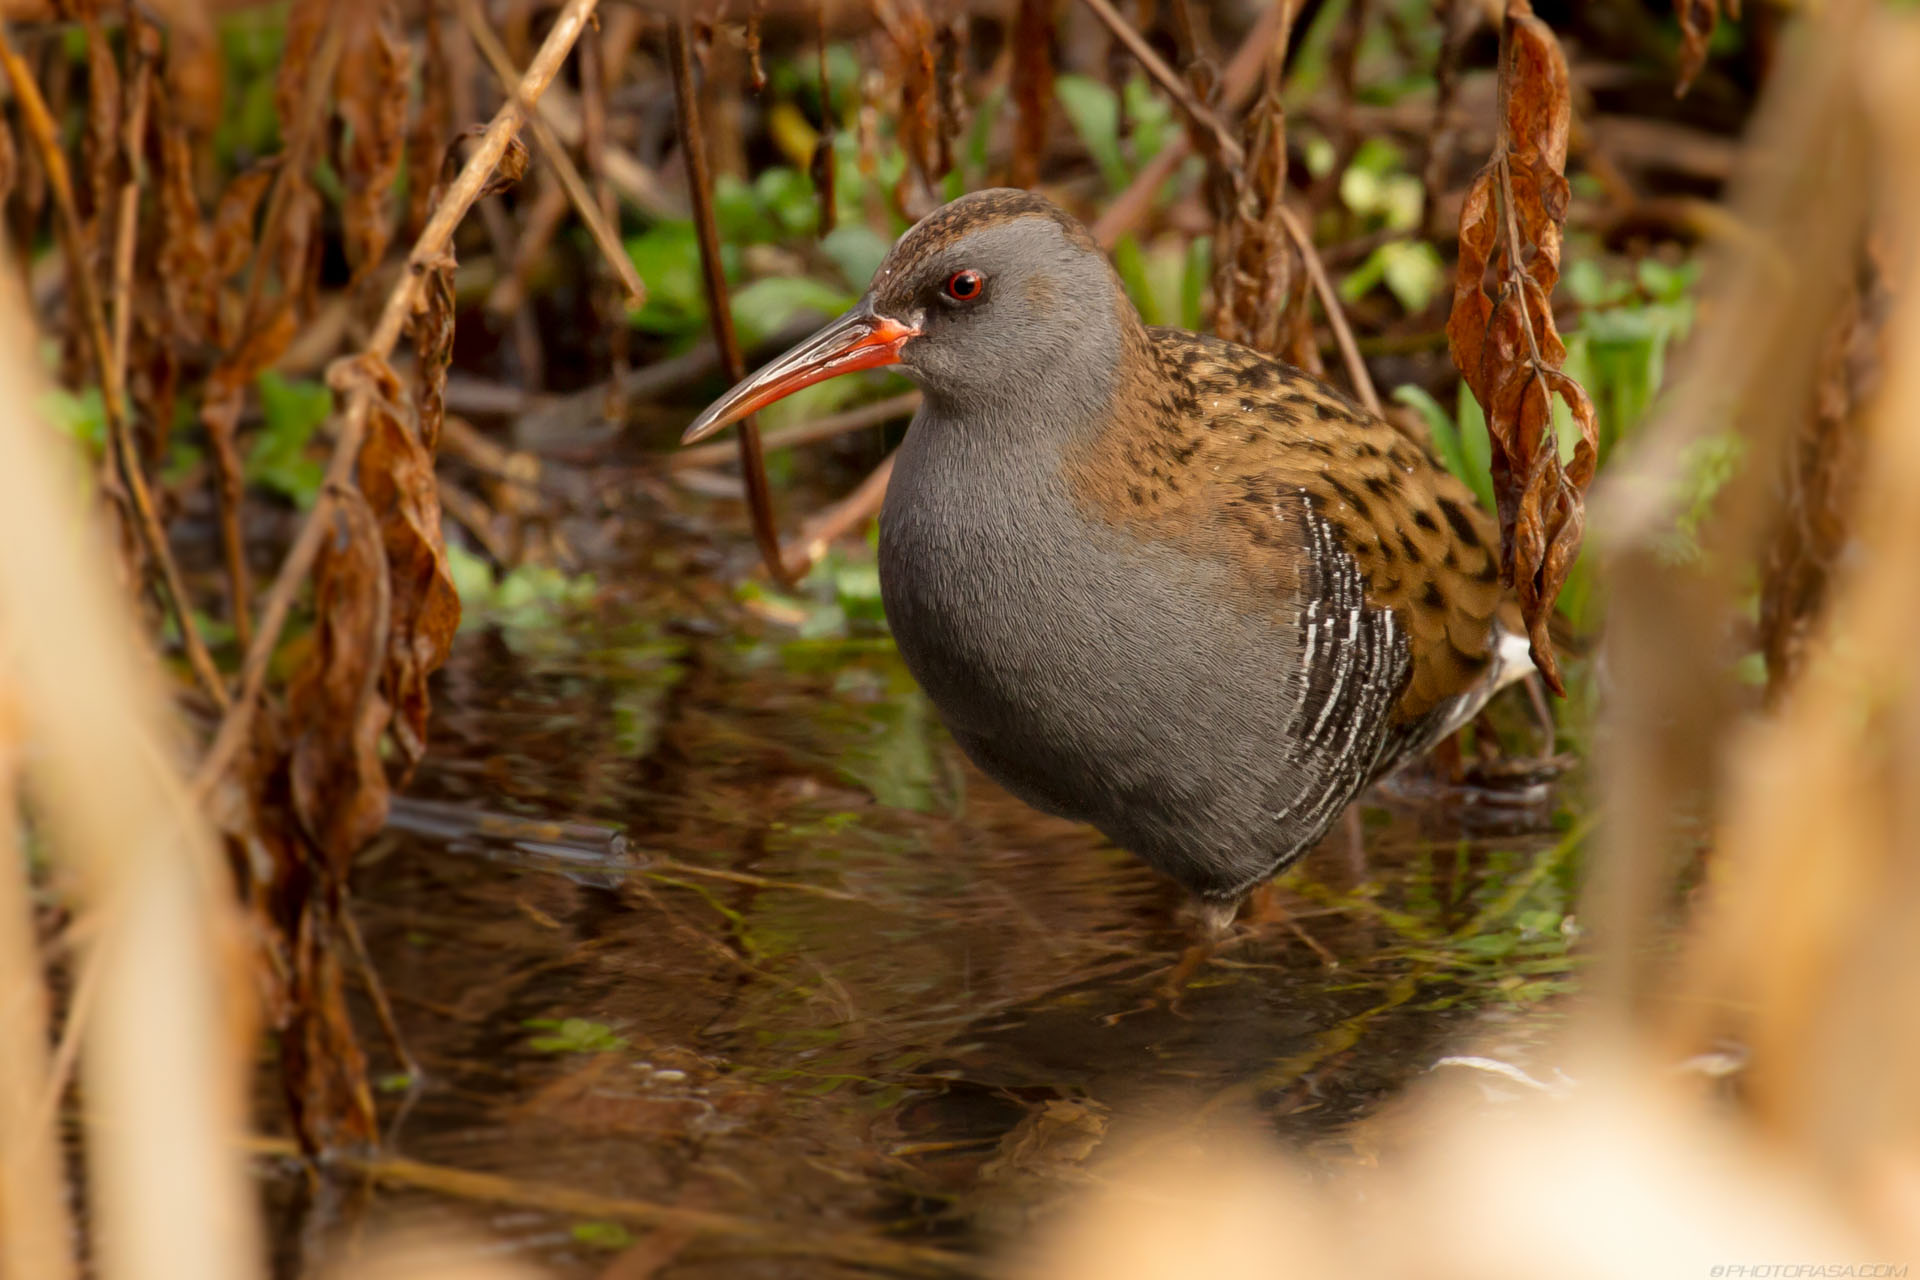 http://photorasa.com/water-rail-by-the-stream/water-rail-looking-left/